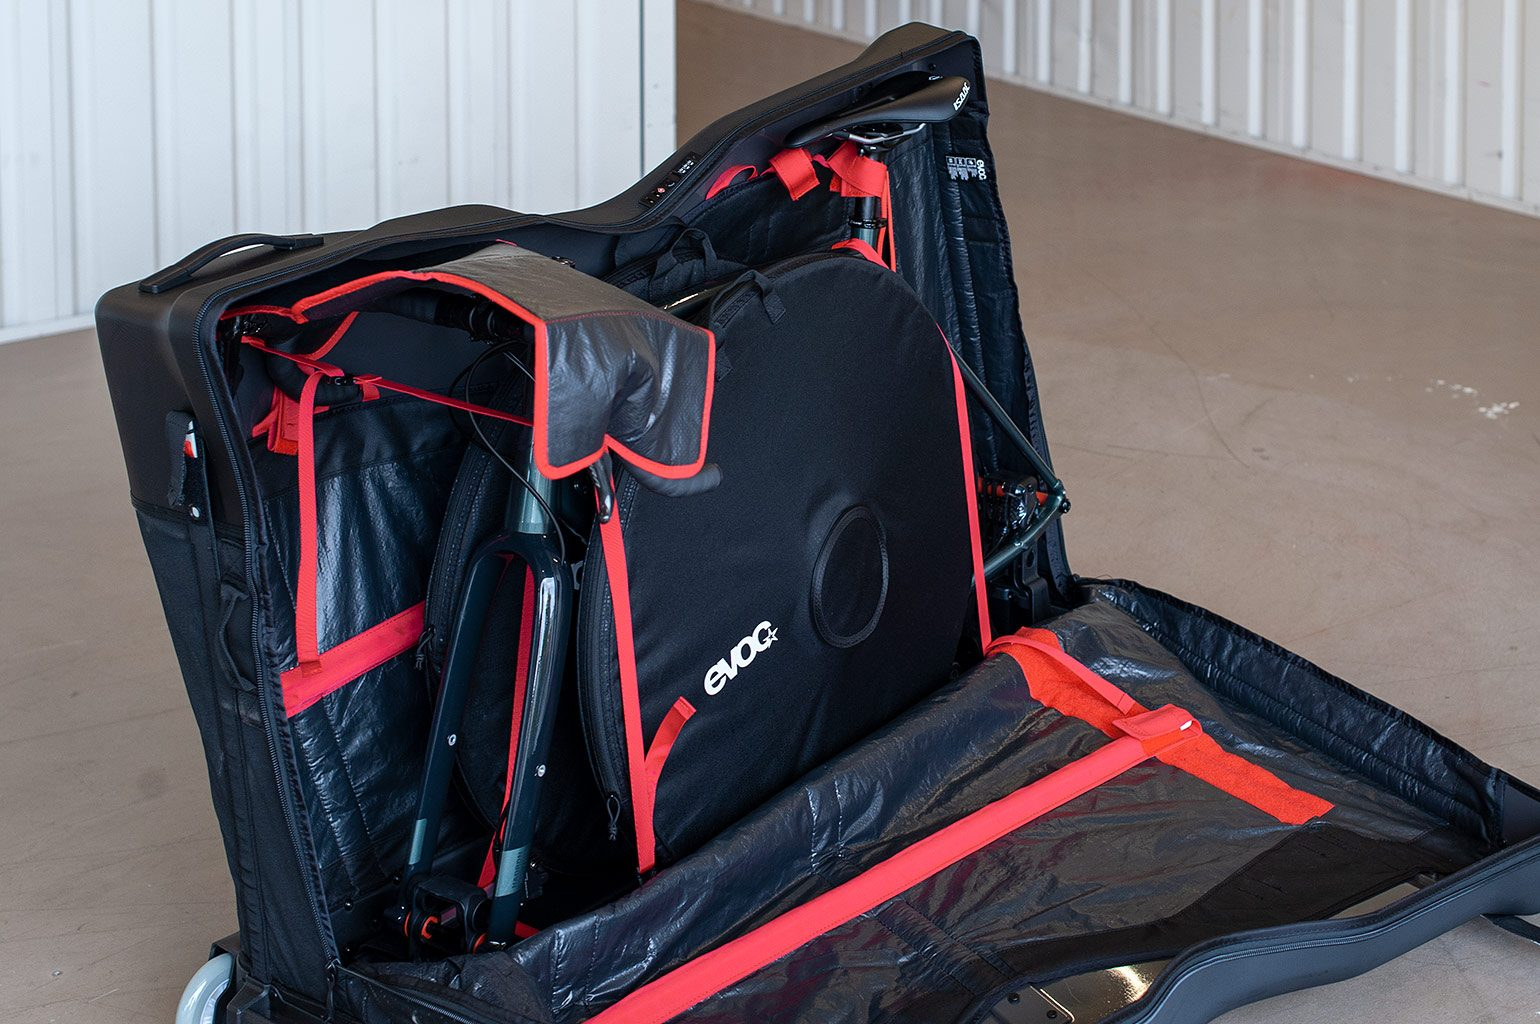 https://www.evocsports.com/products/bags/new-road-bike-bag-pro